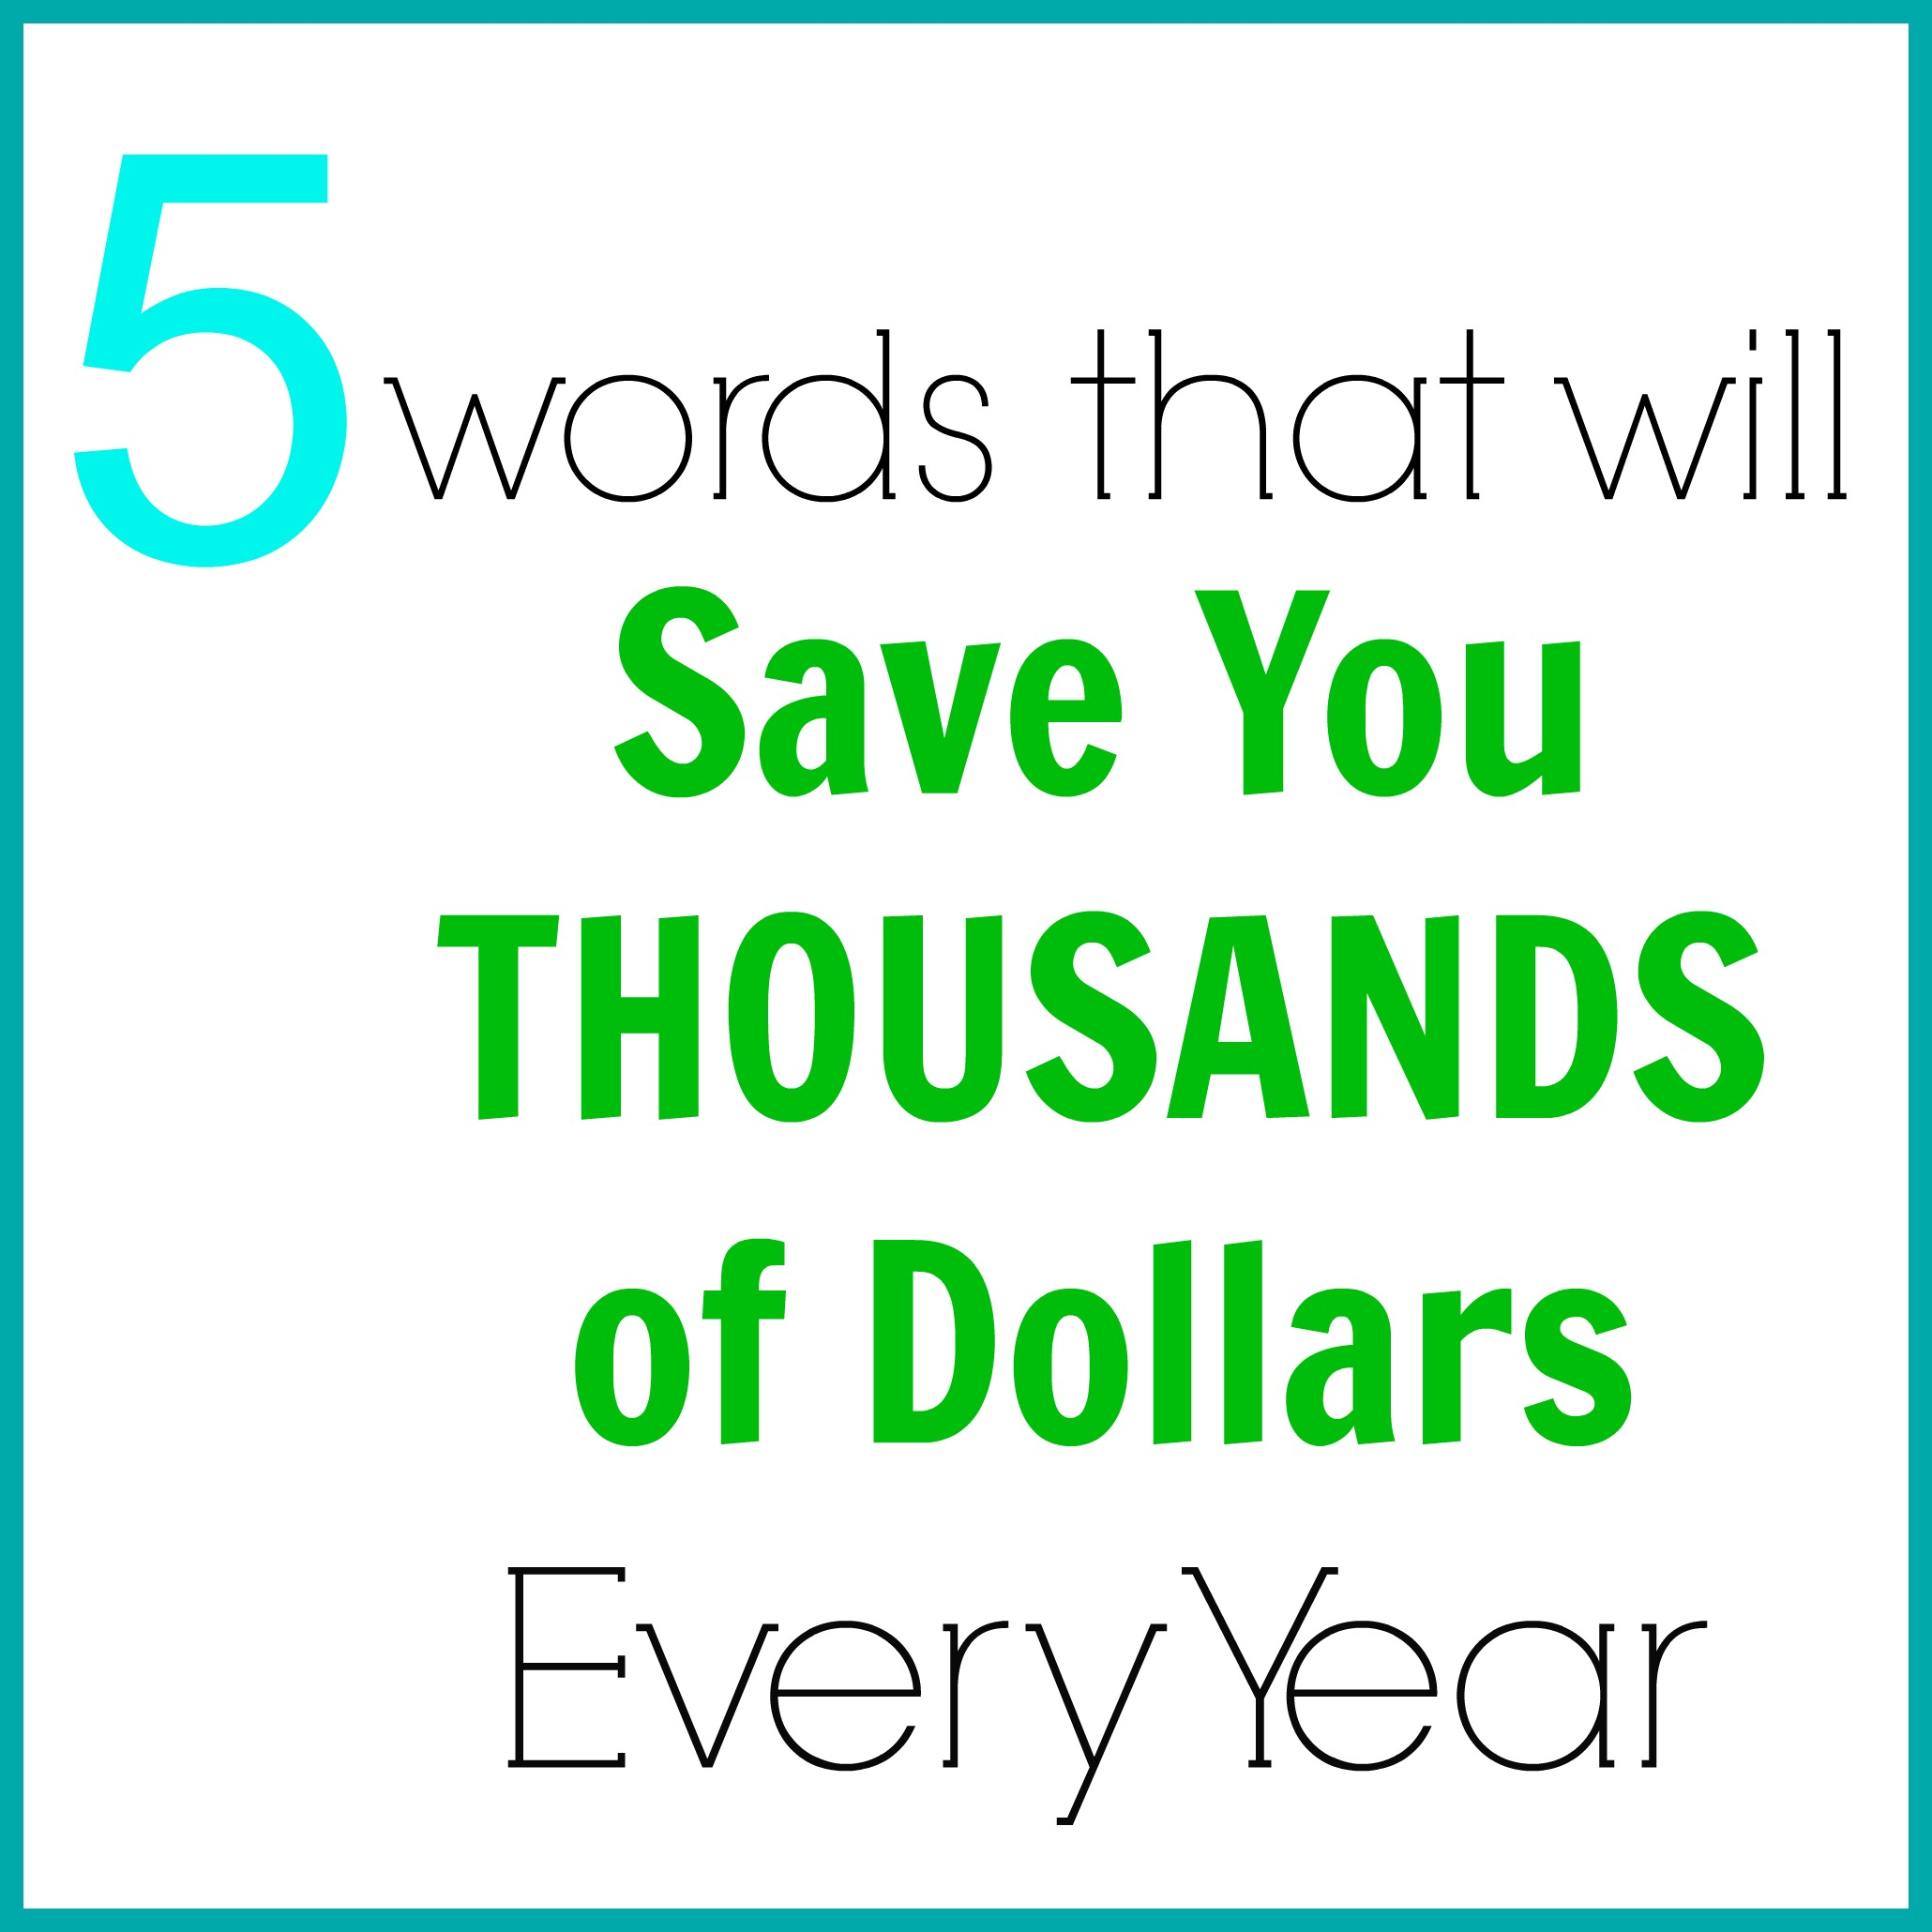 5 words to save money